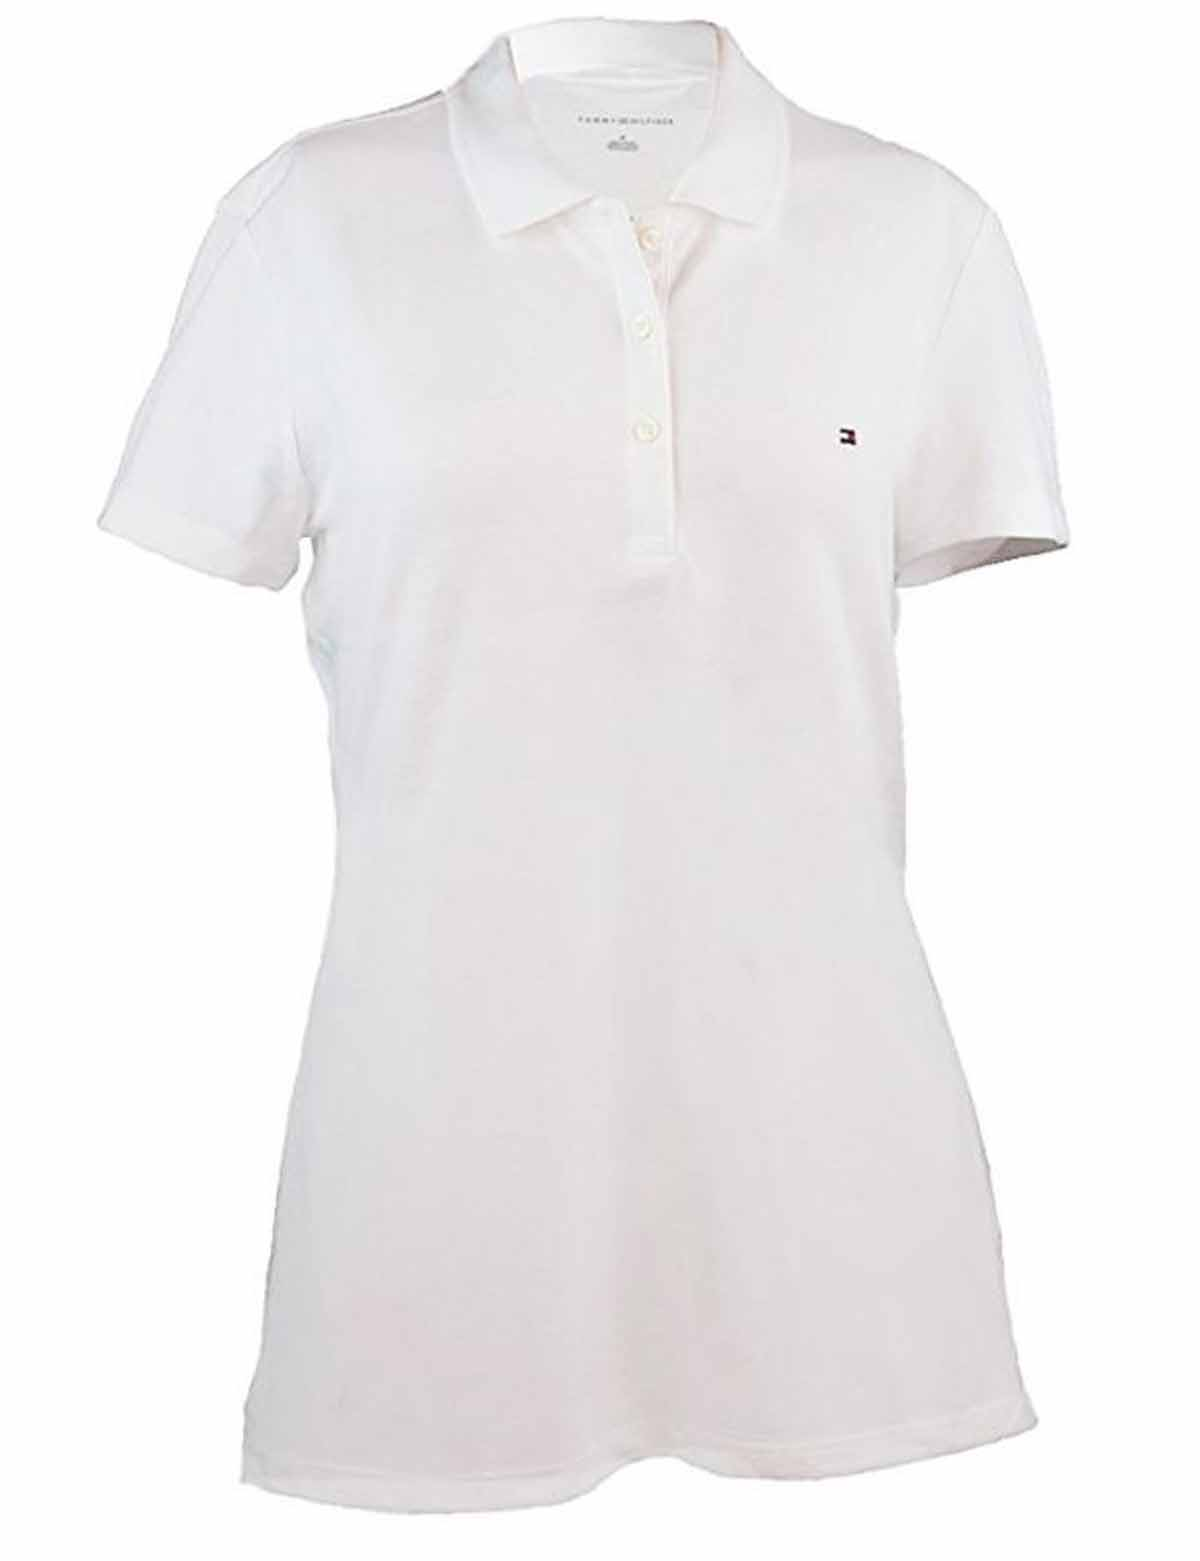 Tommy Hilfiger Womens Classic Fit 3 Button Short Sleeve